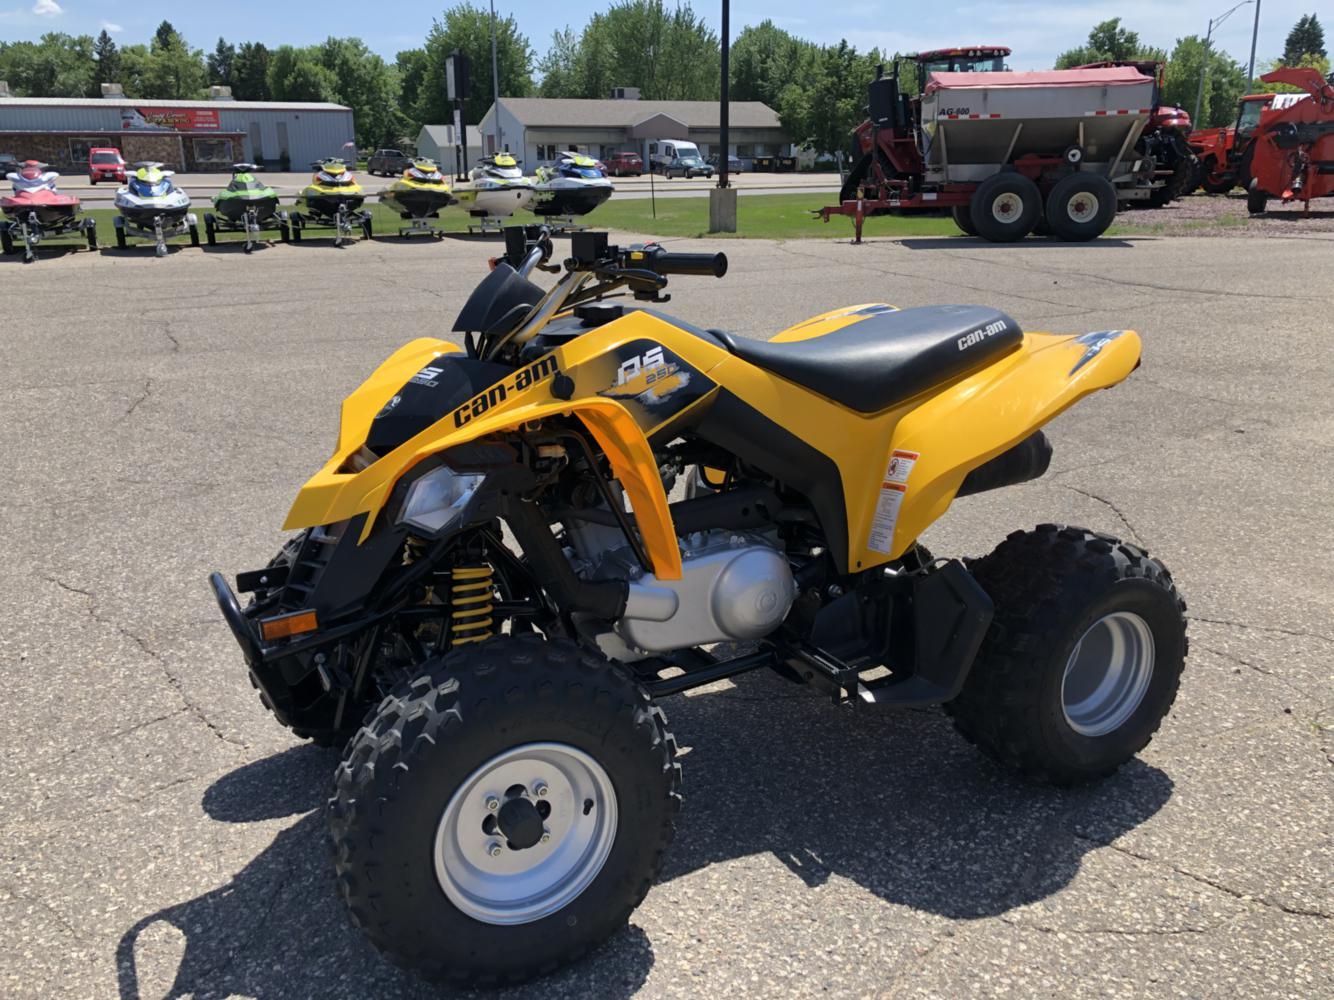 Inventory from Can-Am and Ski-Doo Jaycox Powersports